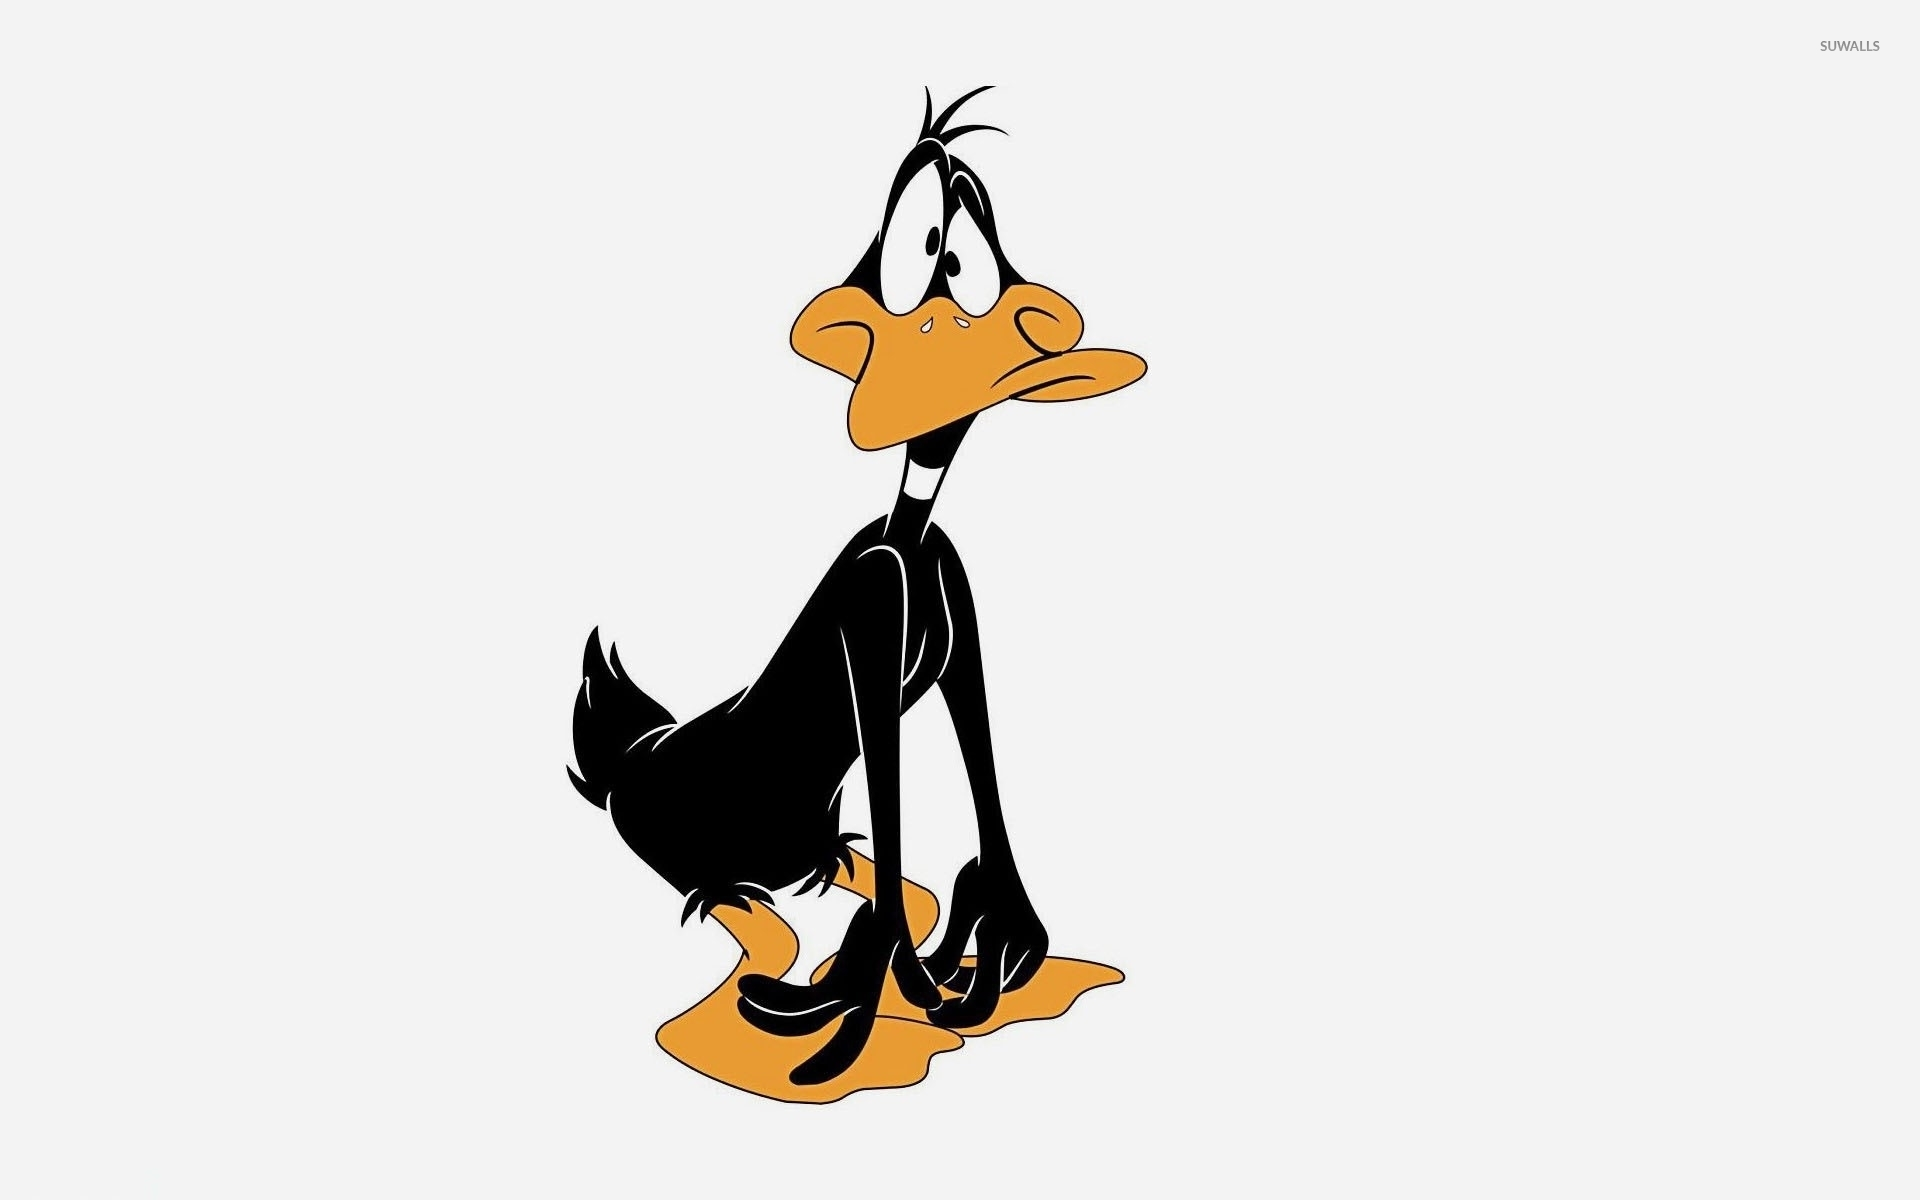 Sad And Surprised Daffy Duck 48621 1920×1200 Wallpaper